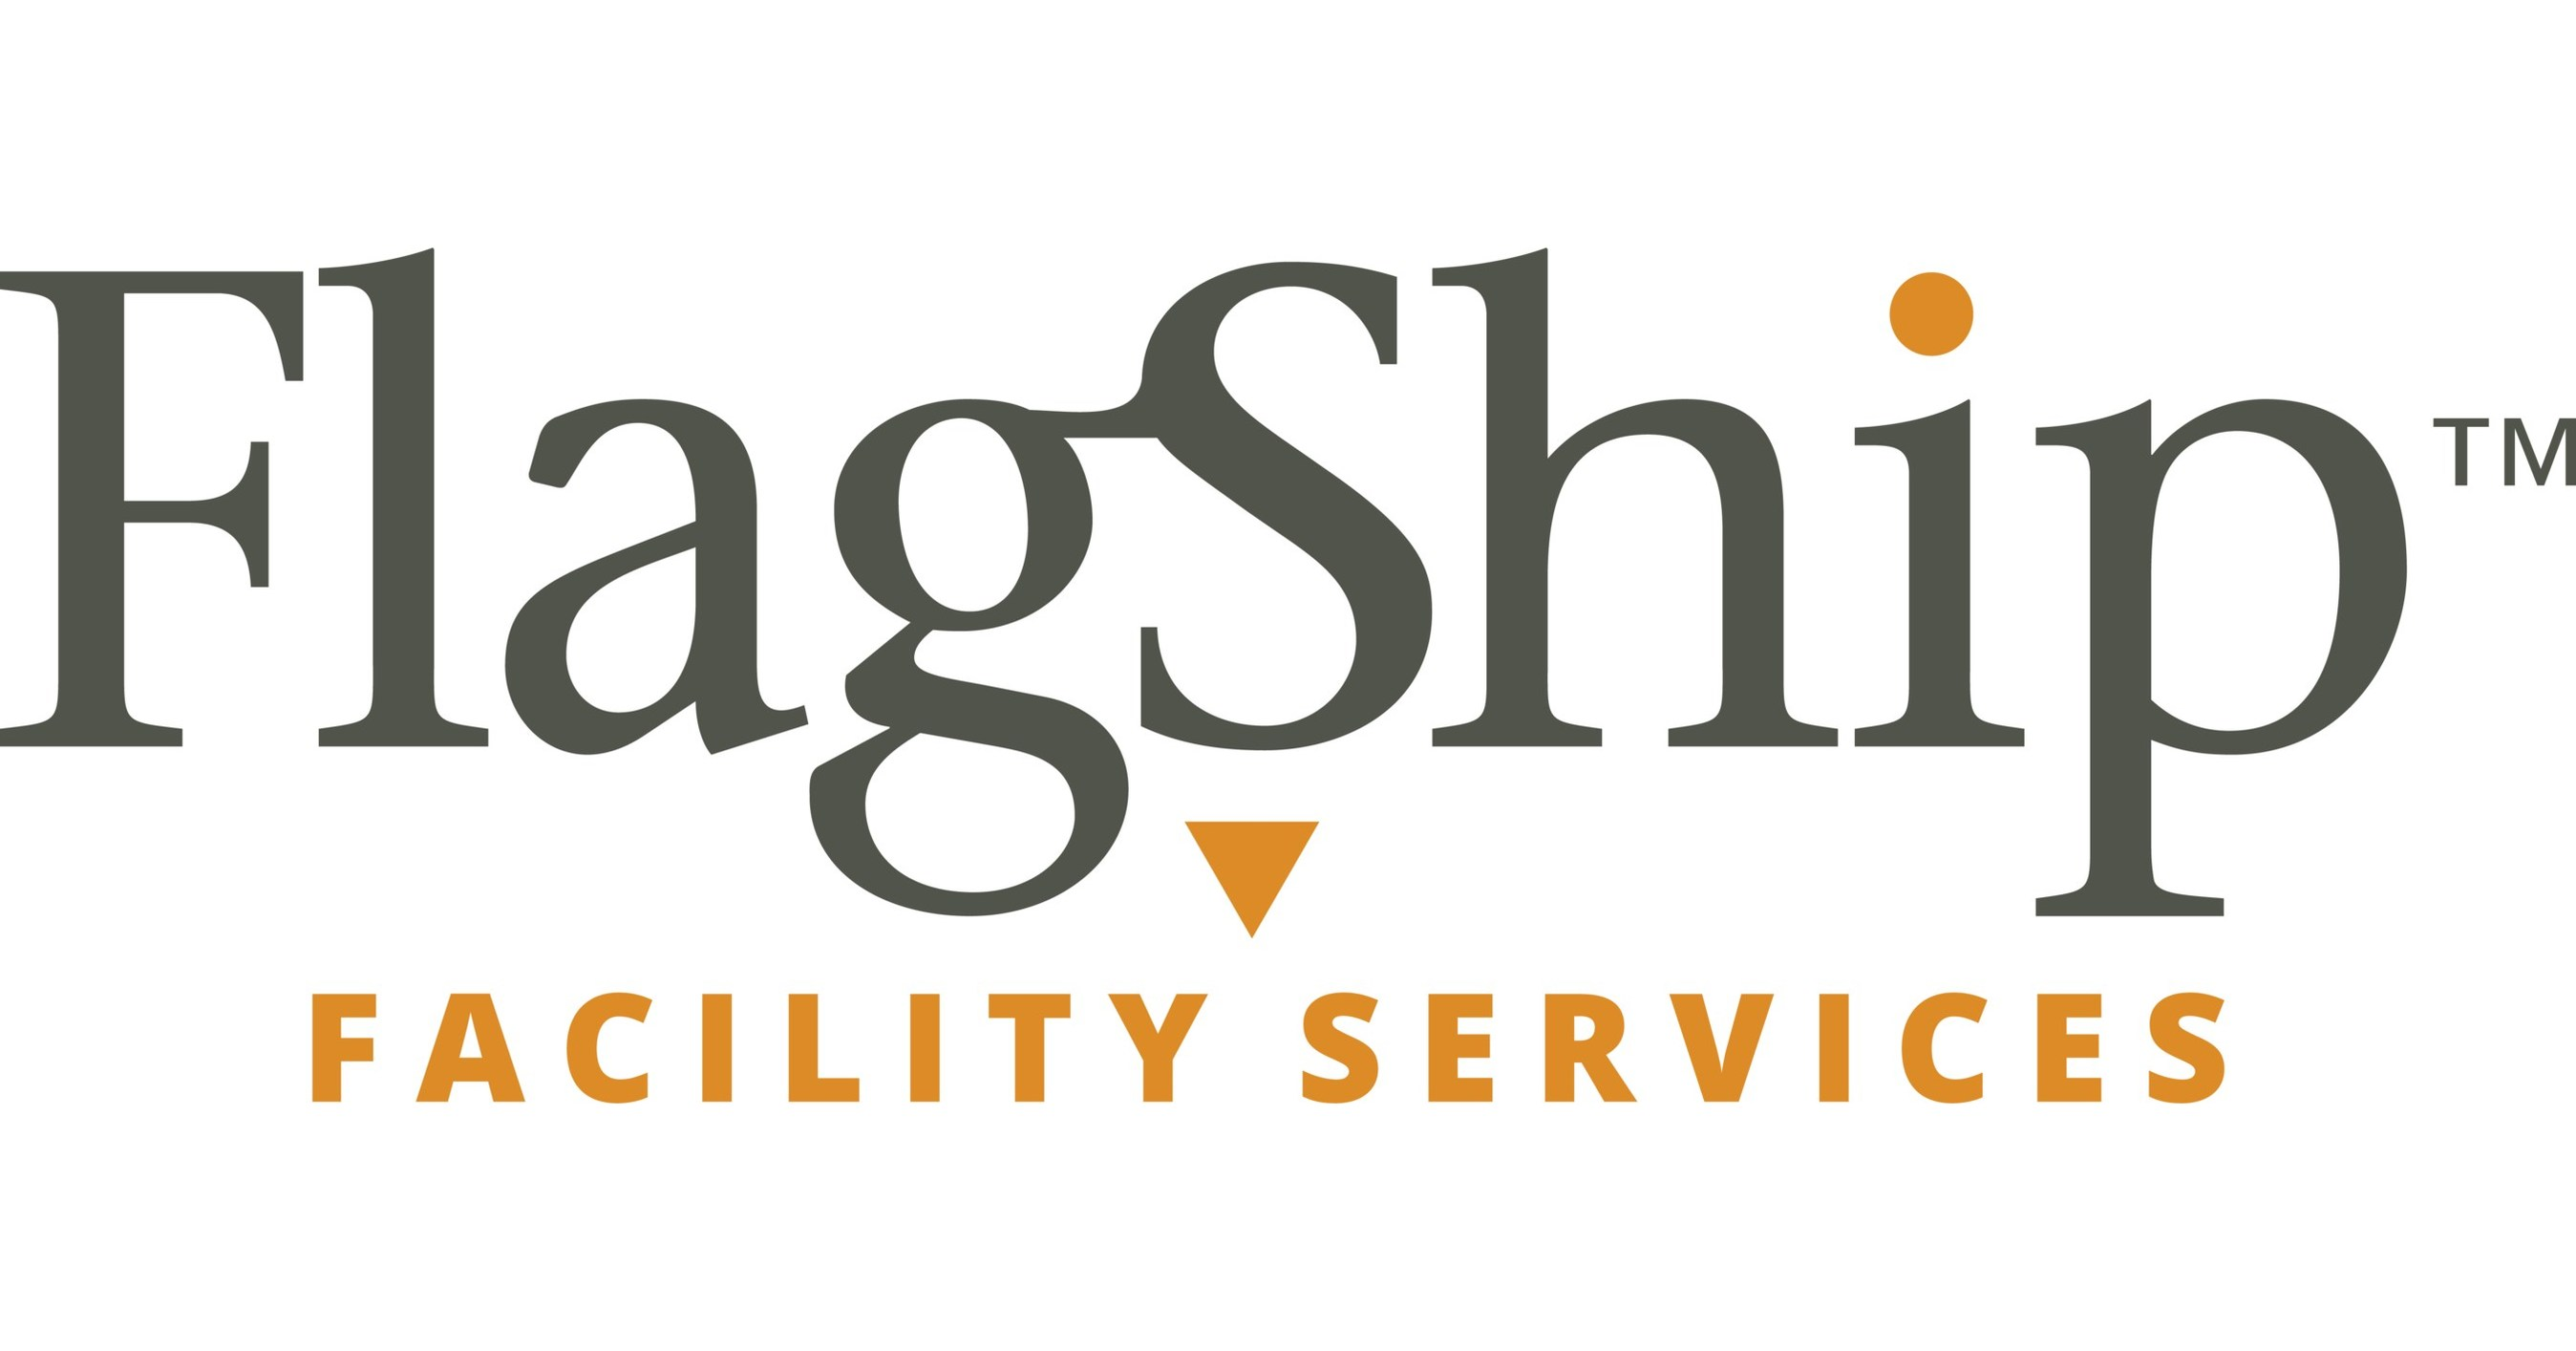 Michael Thompson to Lead Flagship Facility Services